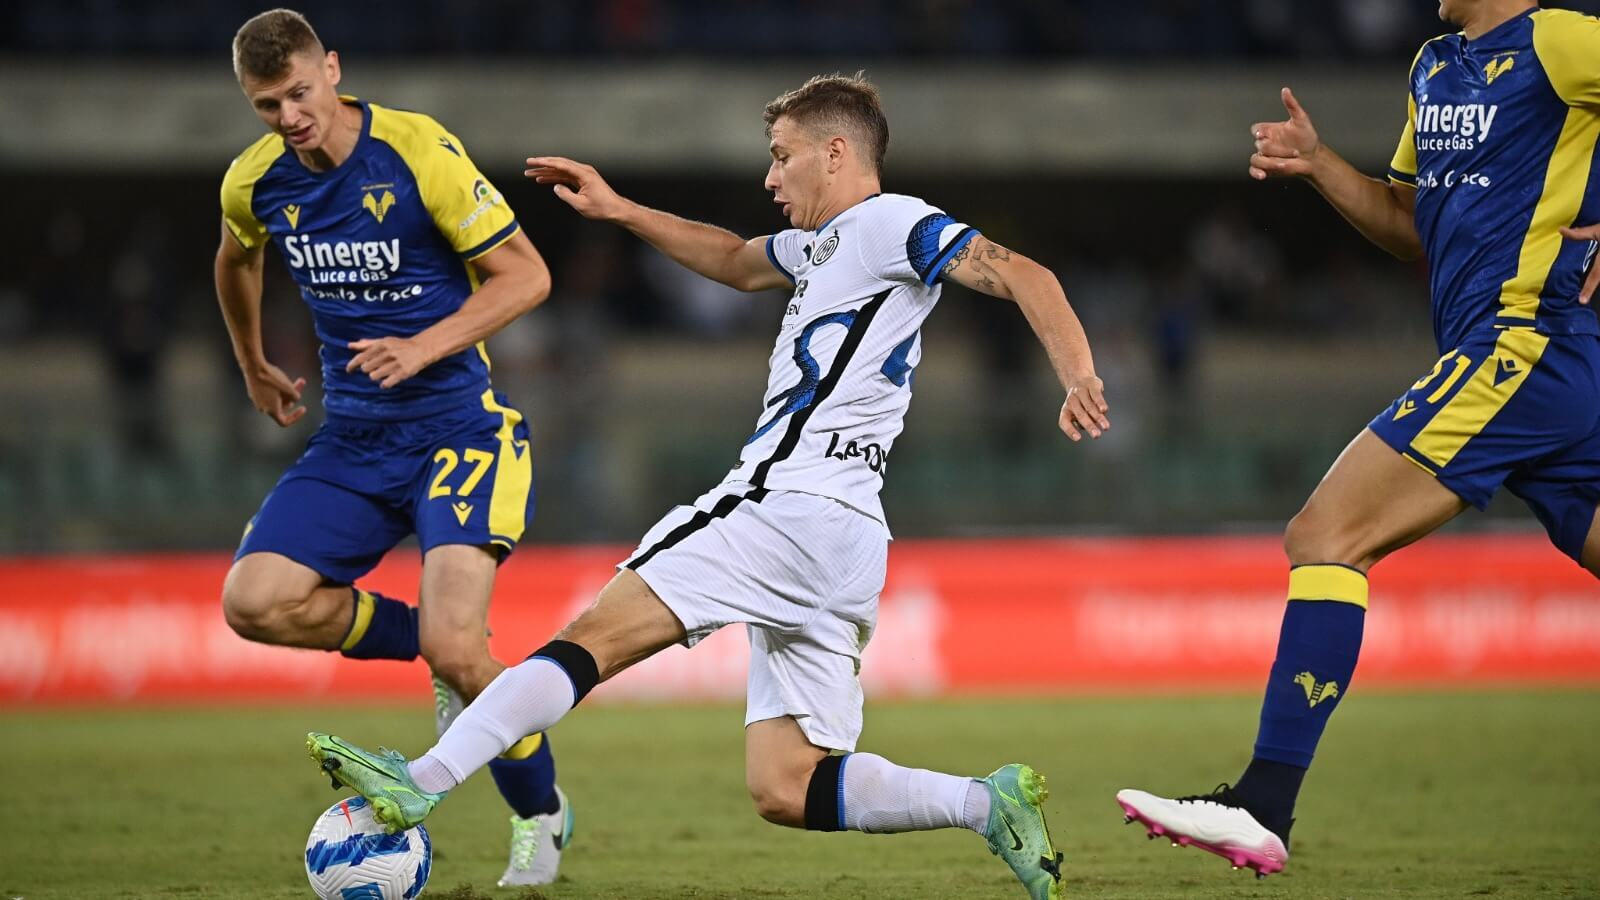 Inter defeated Verona with Correa's debut winning goal